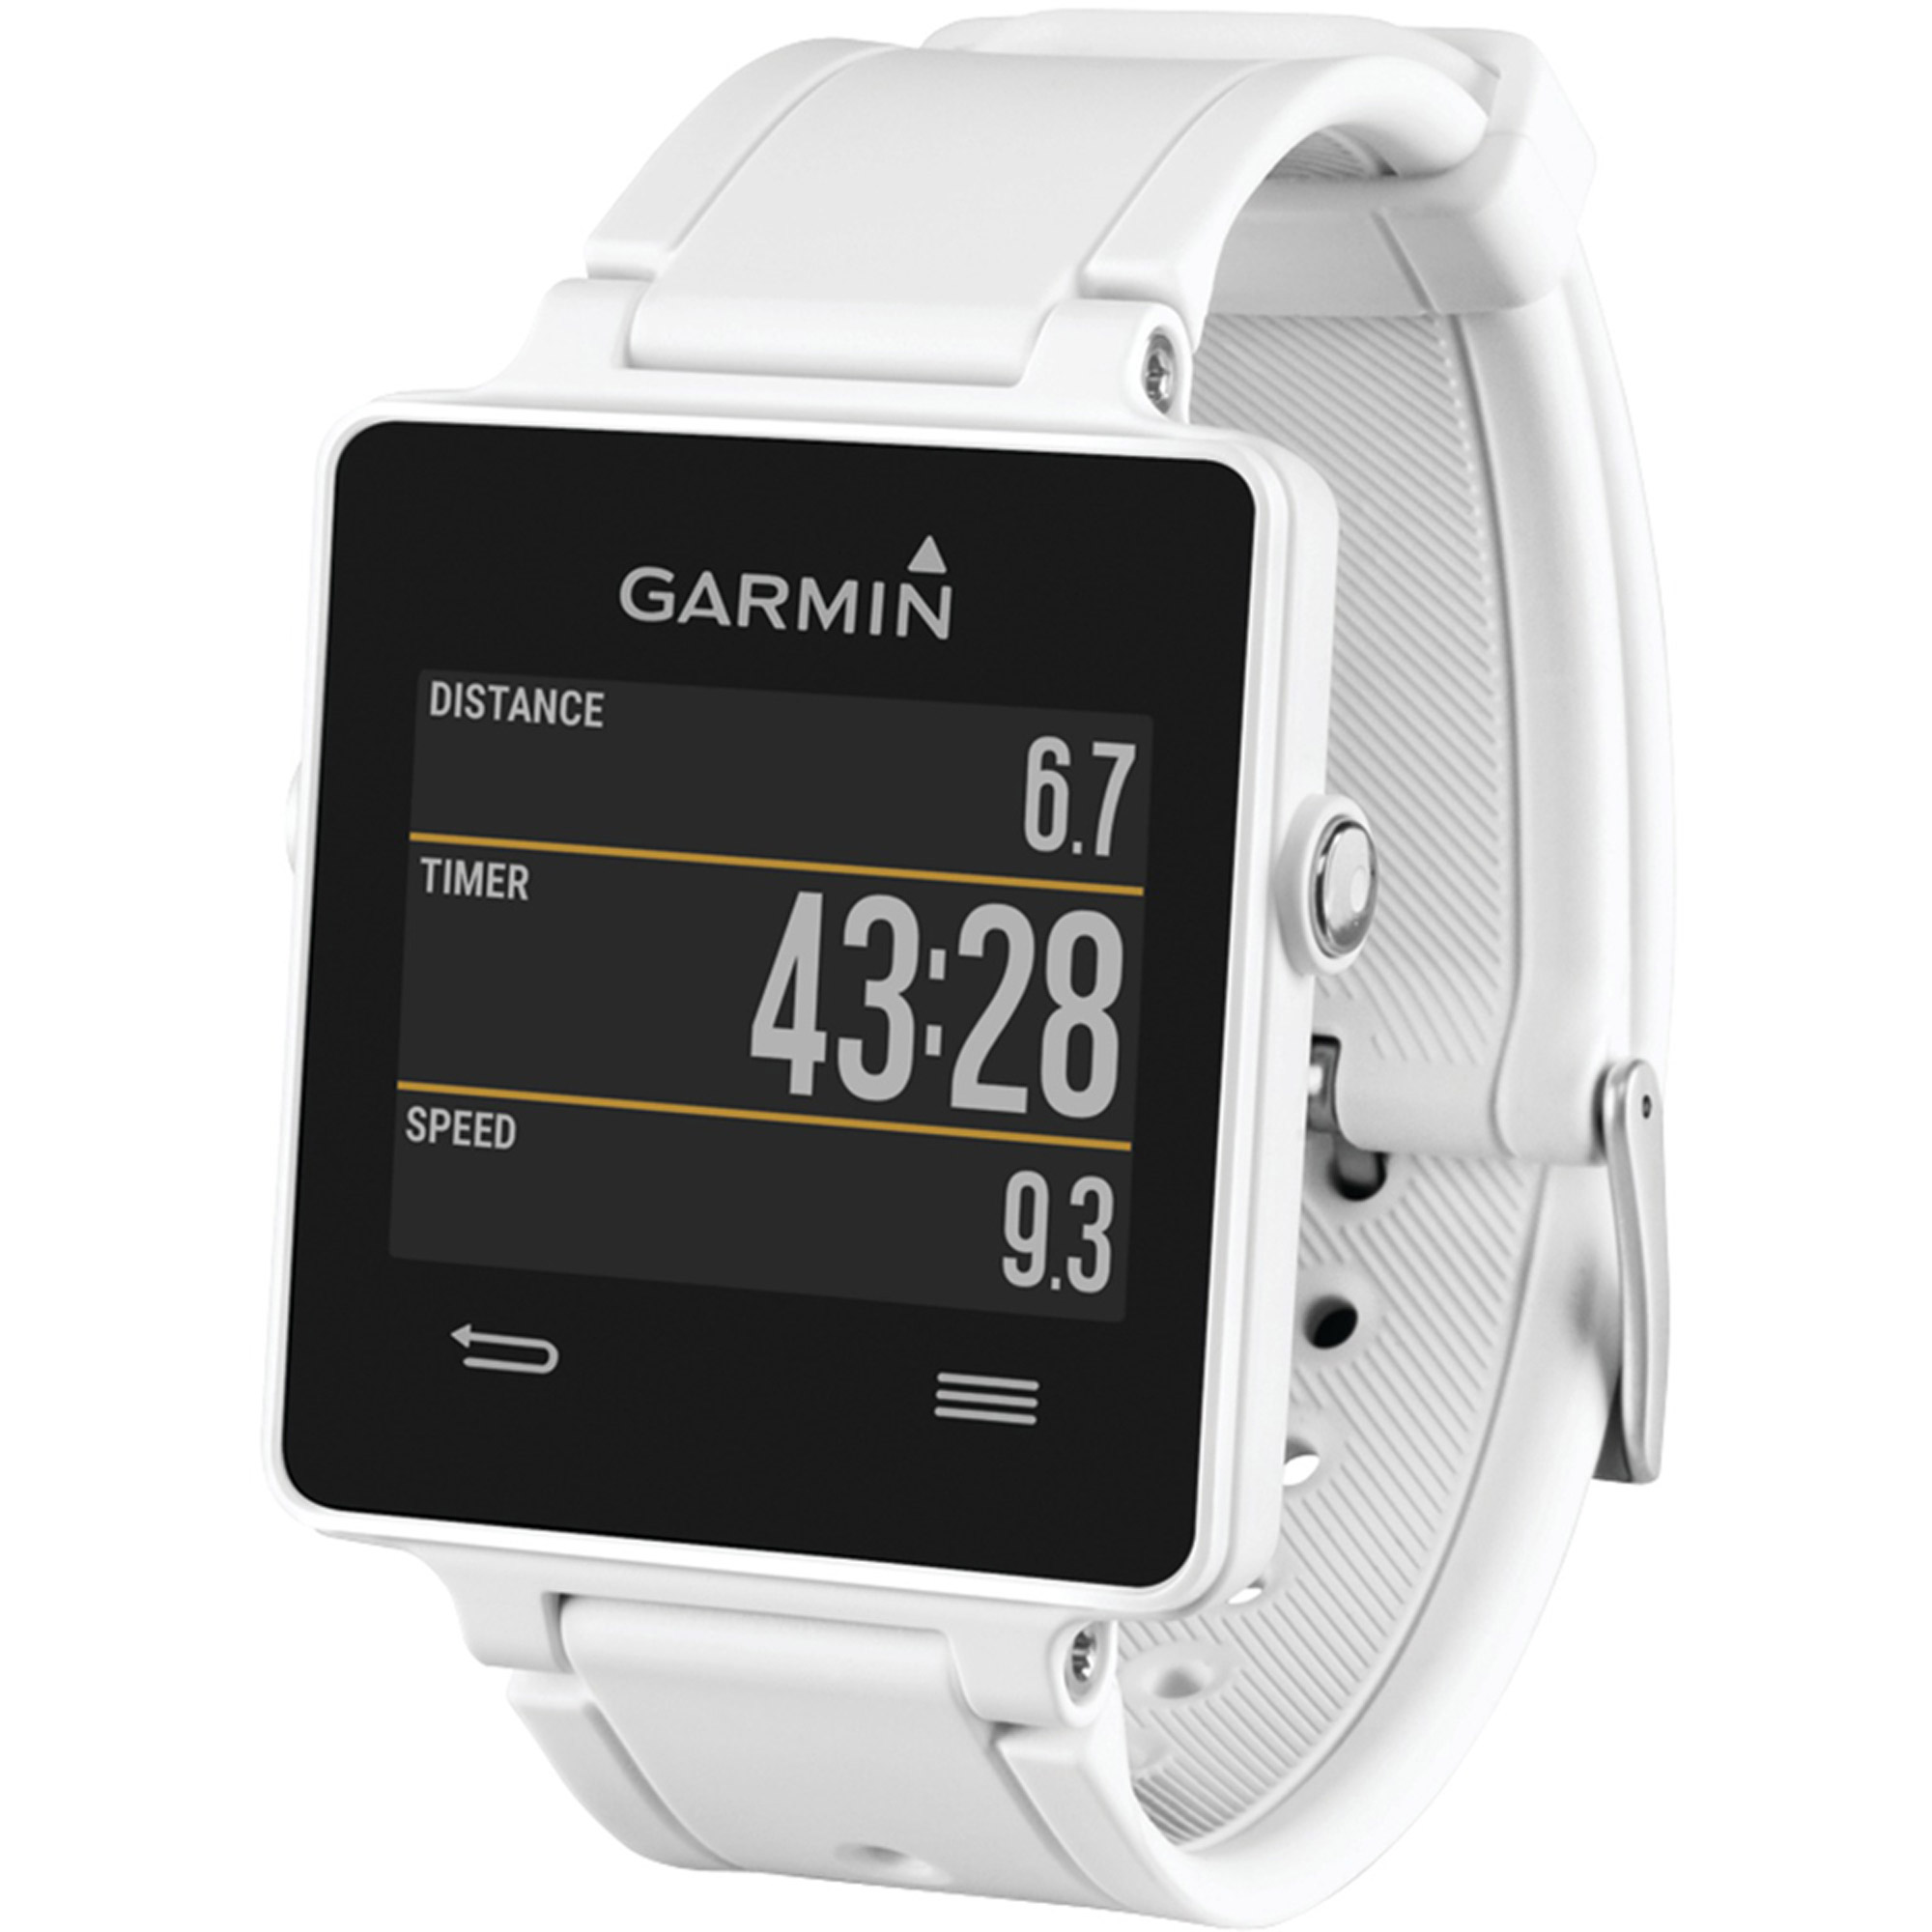 Garmin Vivoactive Smartwatch Bundle, White